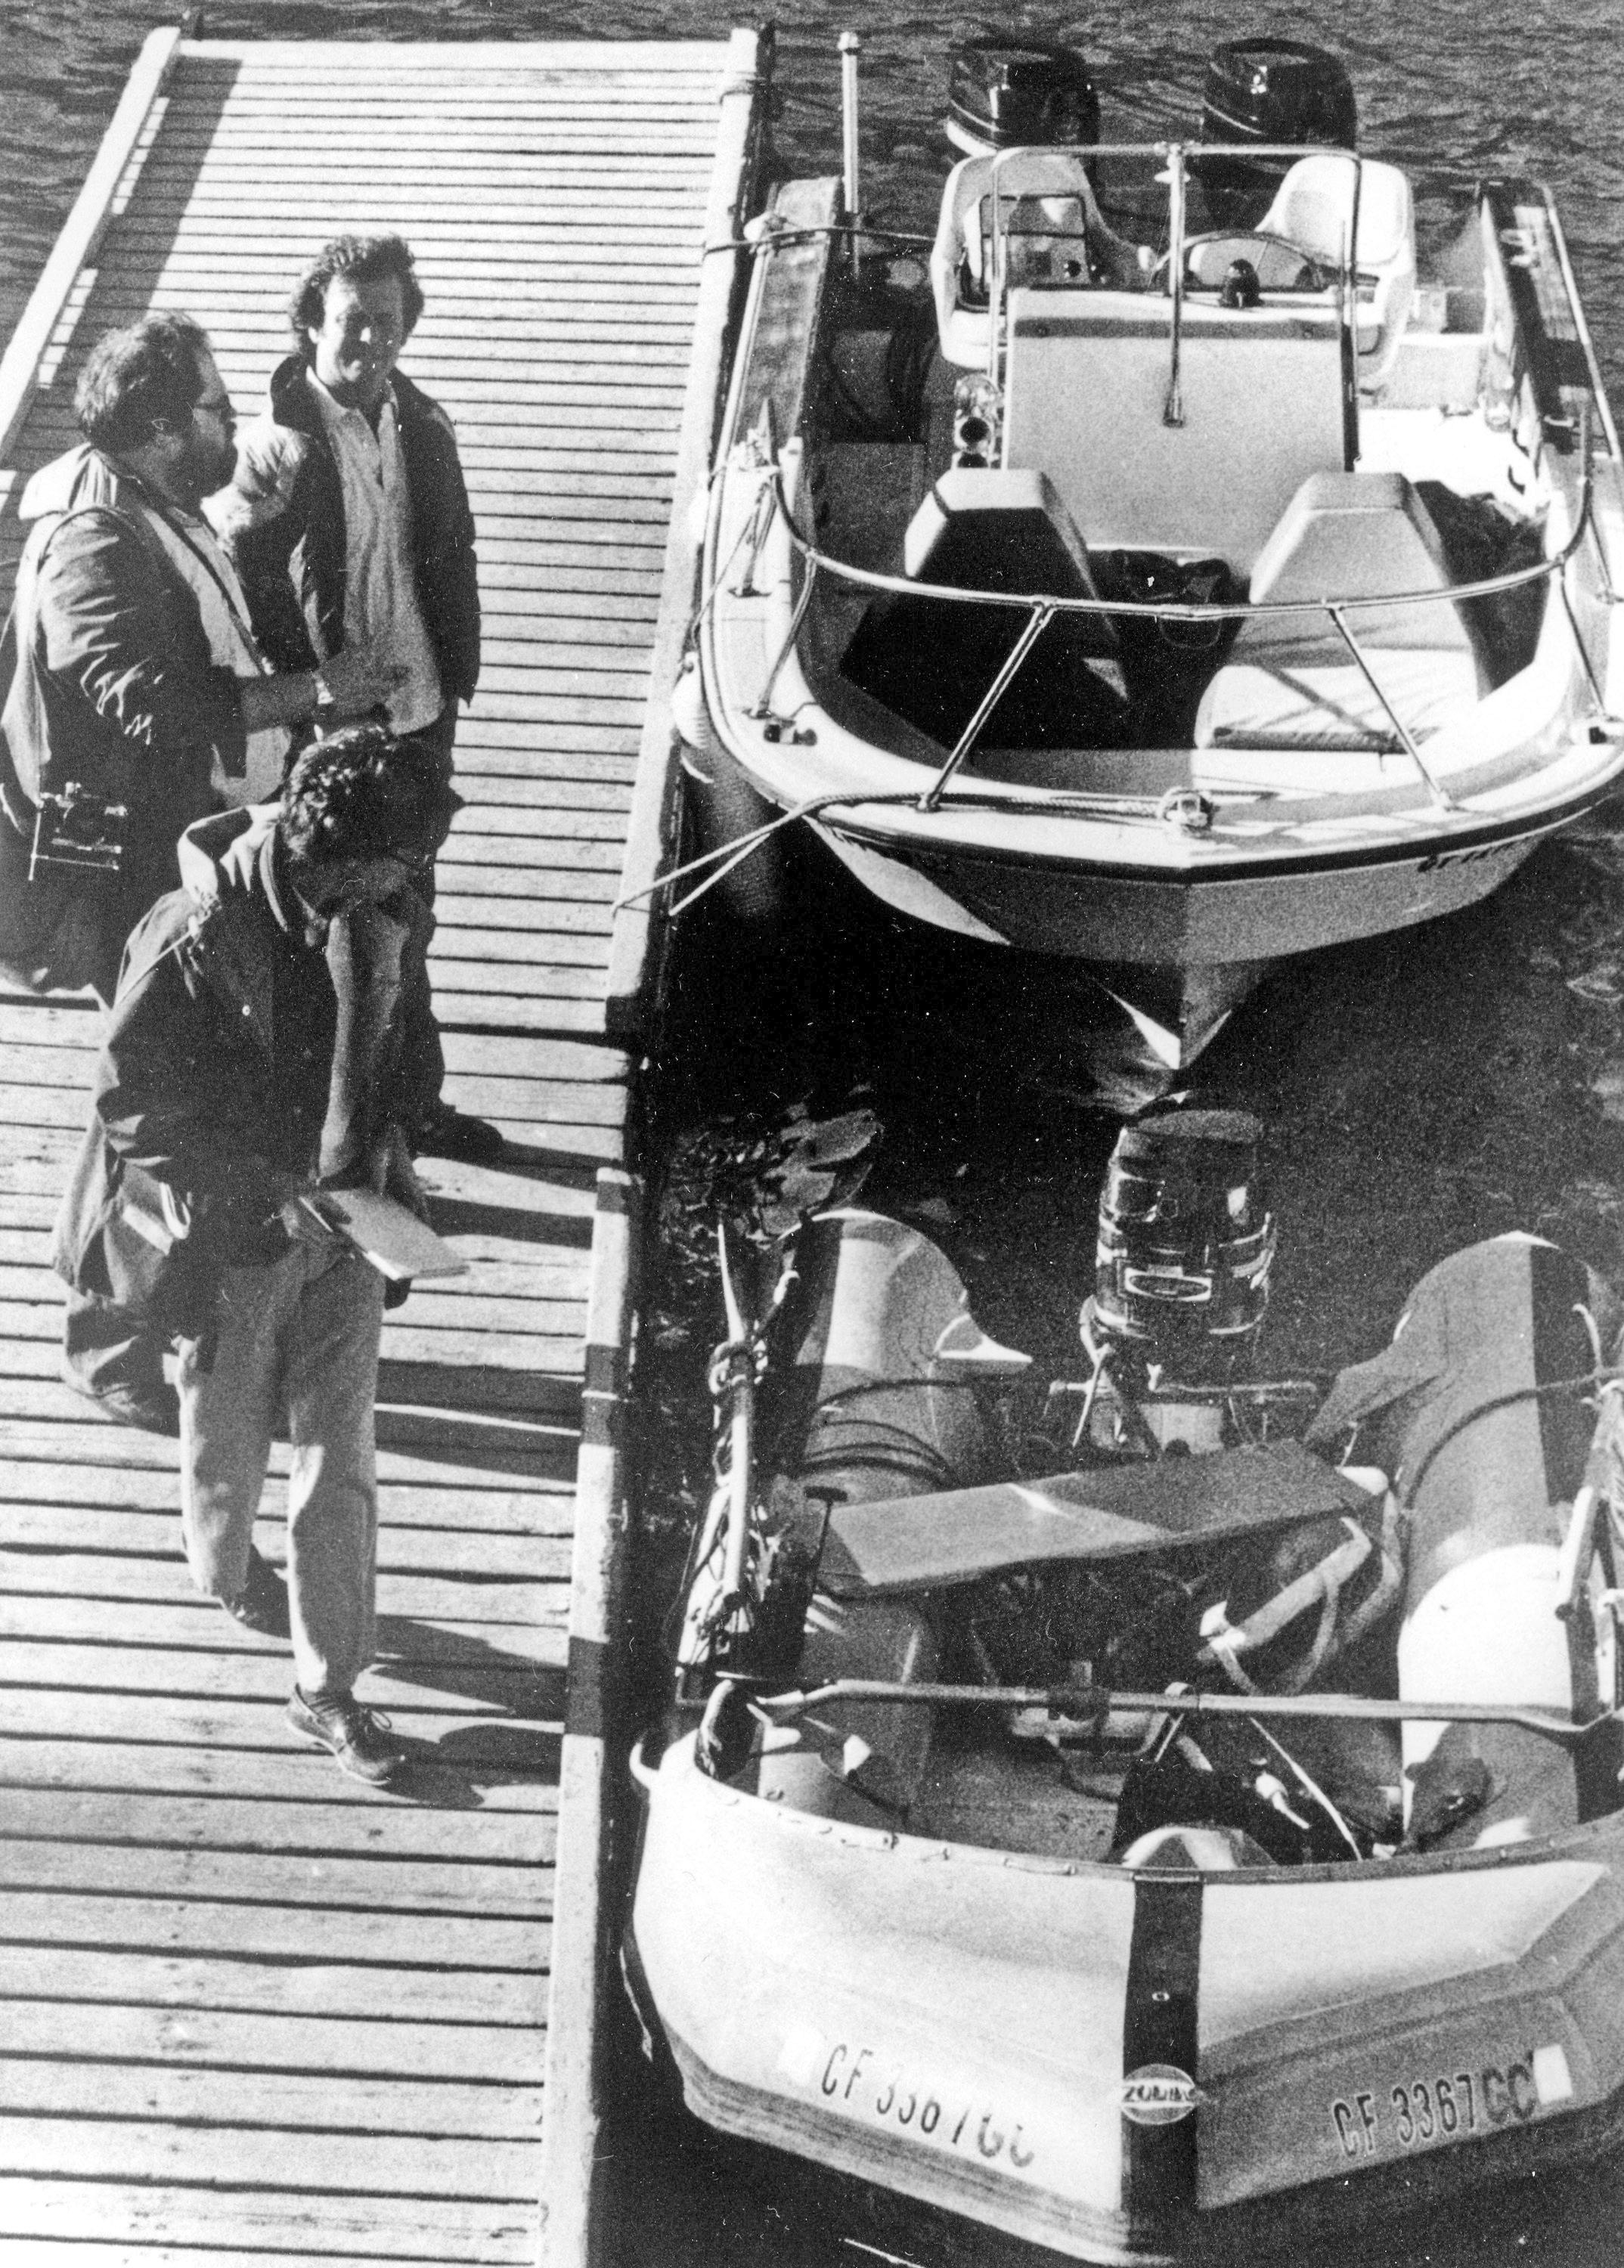 FILE - This Nov. 30, 1981 file photo shows the &quot;Prince Valiant,&quot; the inflatable dinghy used by Natalie Wood, moored at the harbor in Avalon, Calif., after it washed up on the rocks on Santa Catalina Island. {&amp;nbsp;}(AP Photo/Paul J. Harrington, File)<p></p>